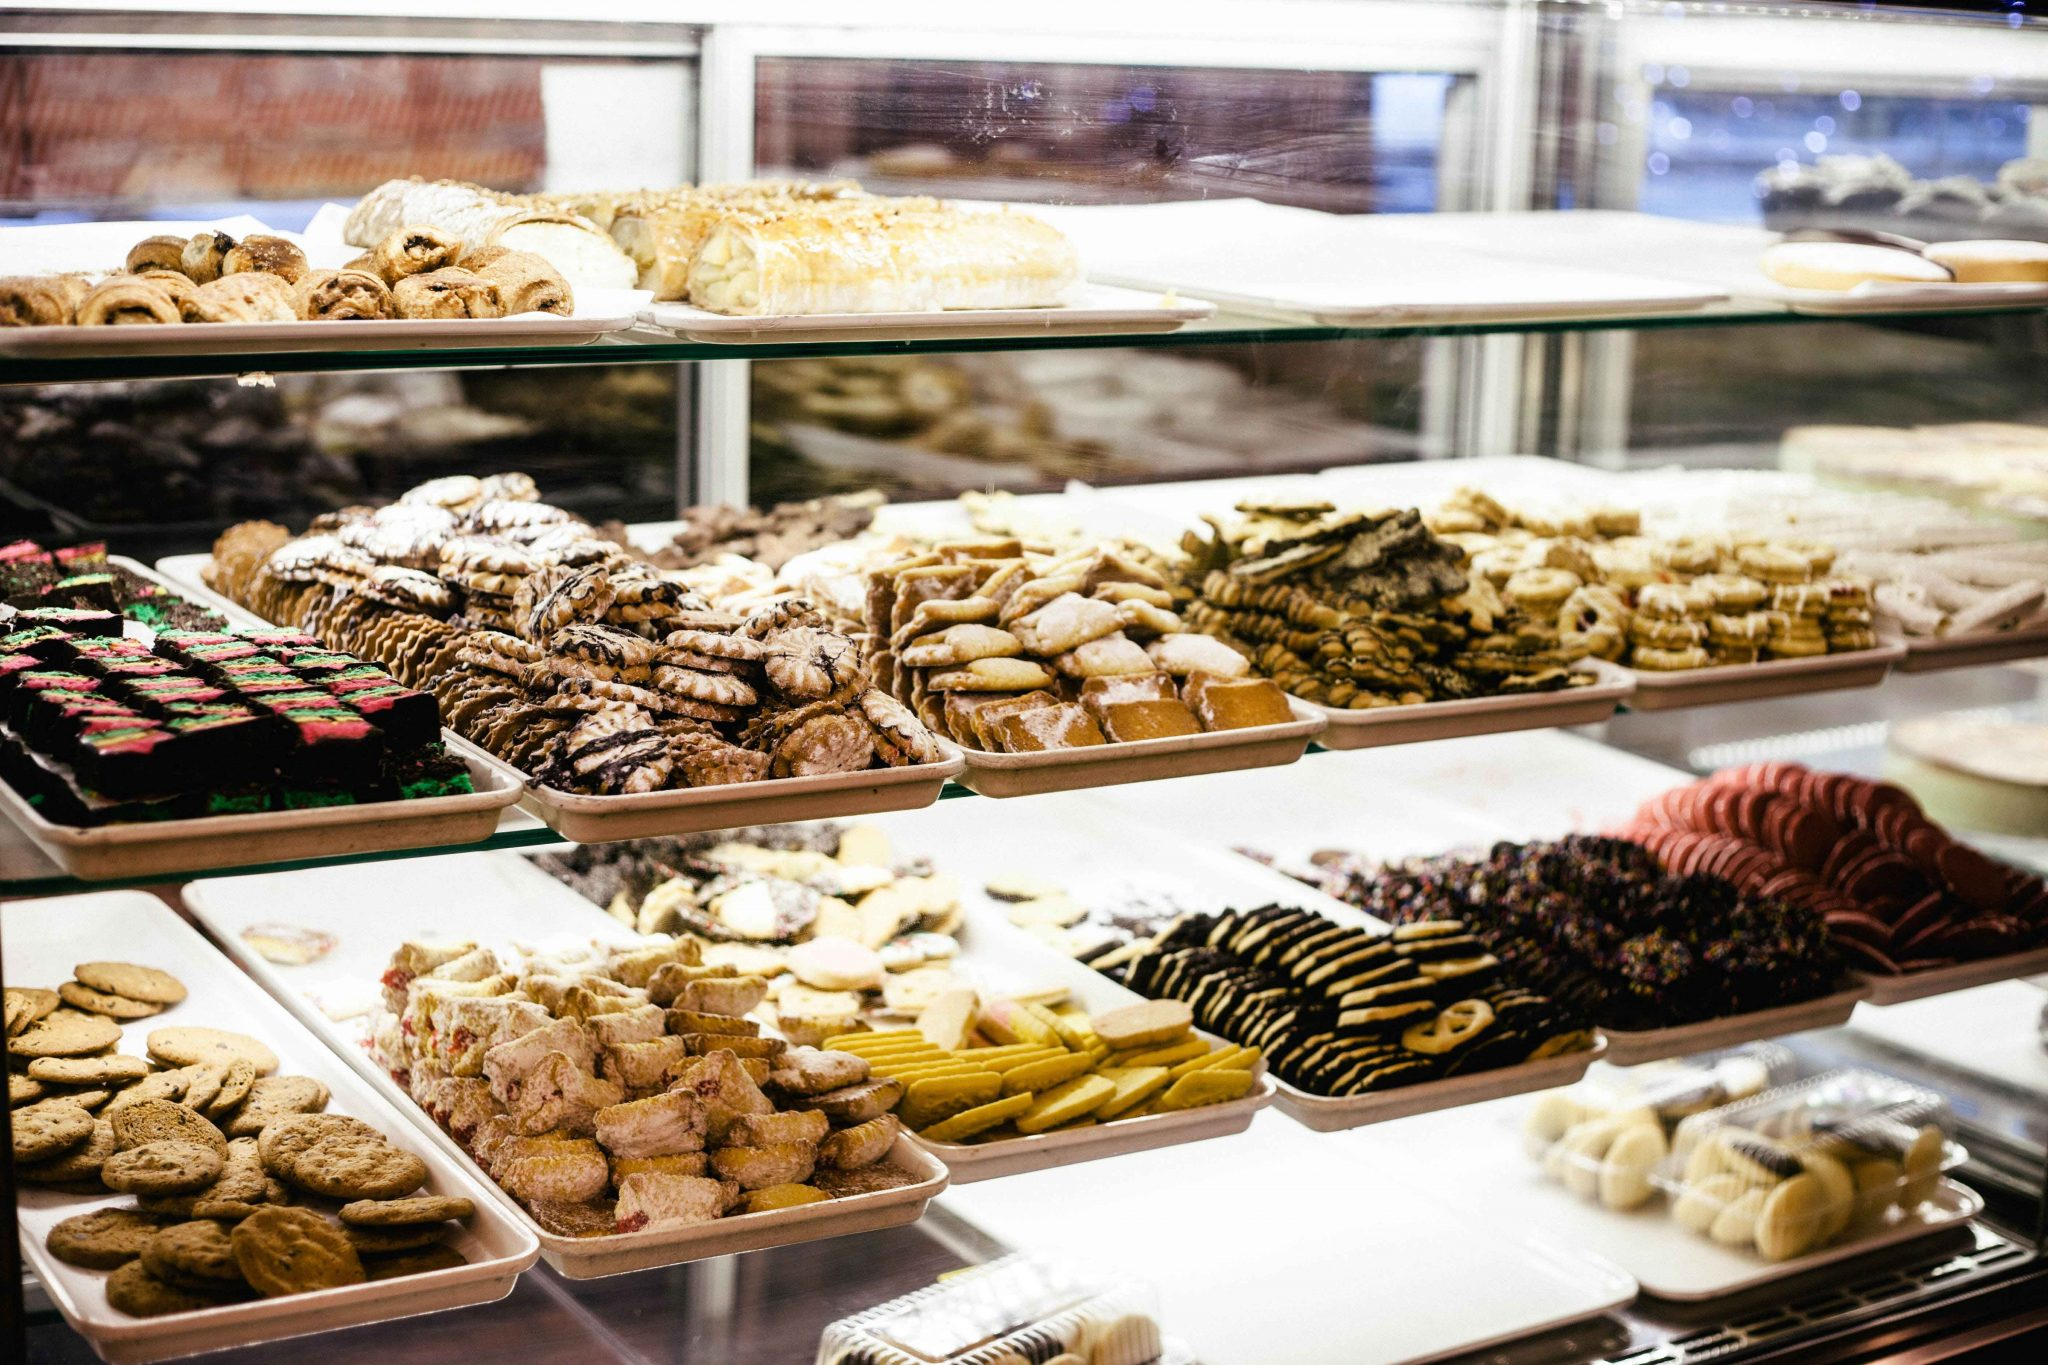 Cake Shop for Sale in Brisbane by Interbiz Business Brokers